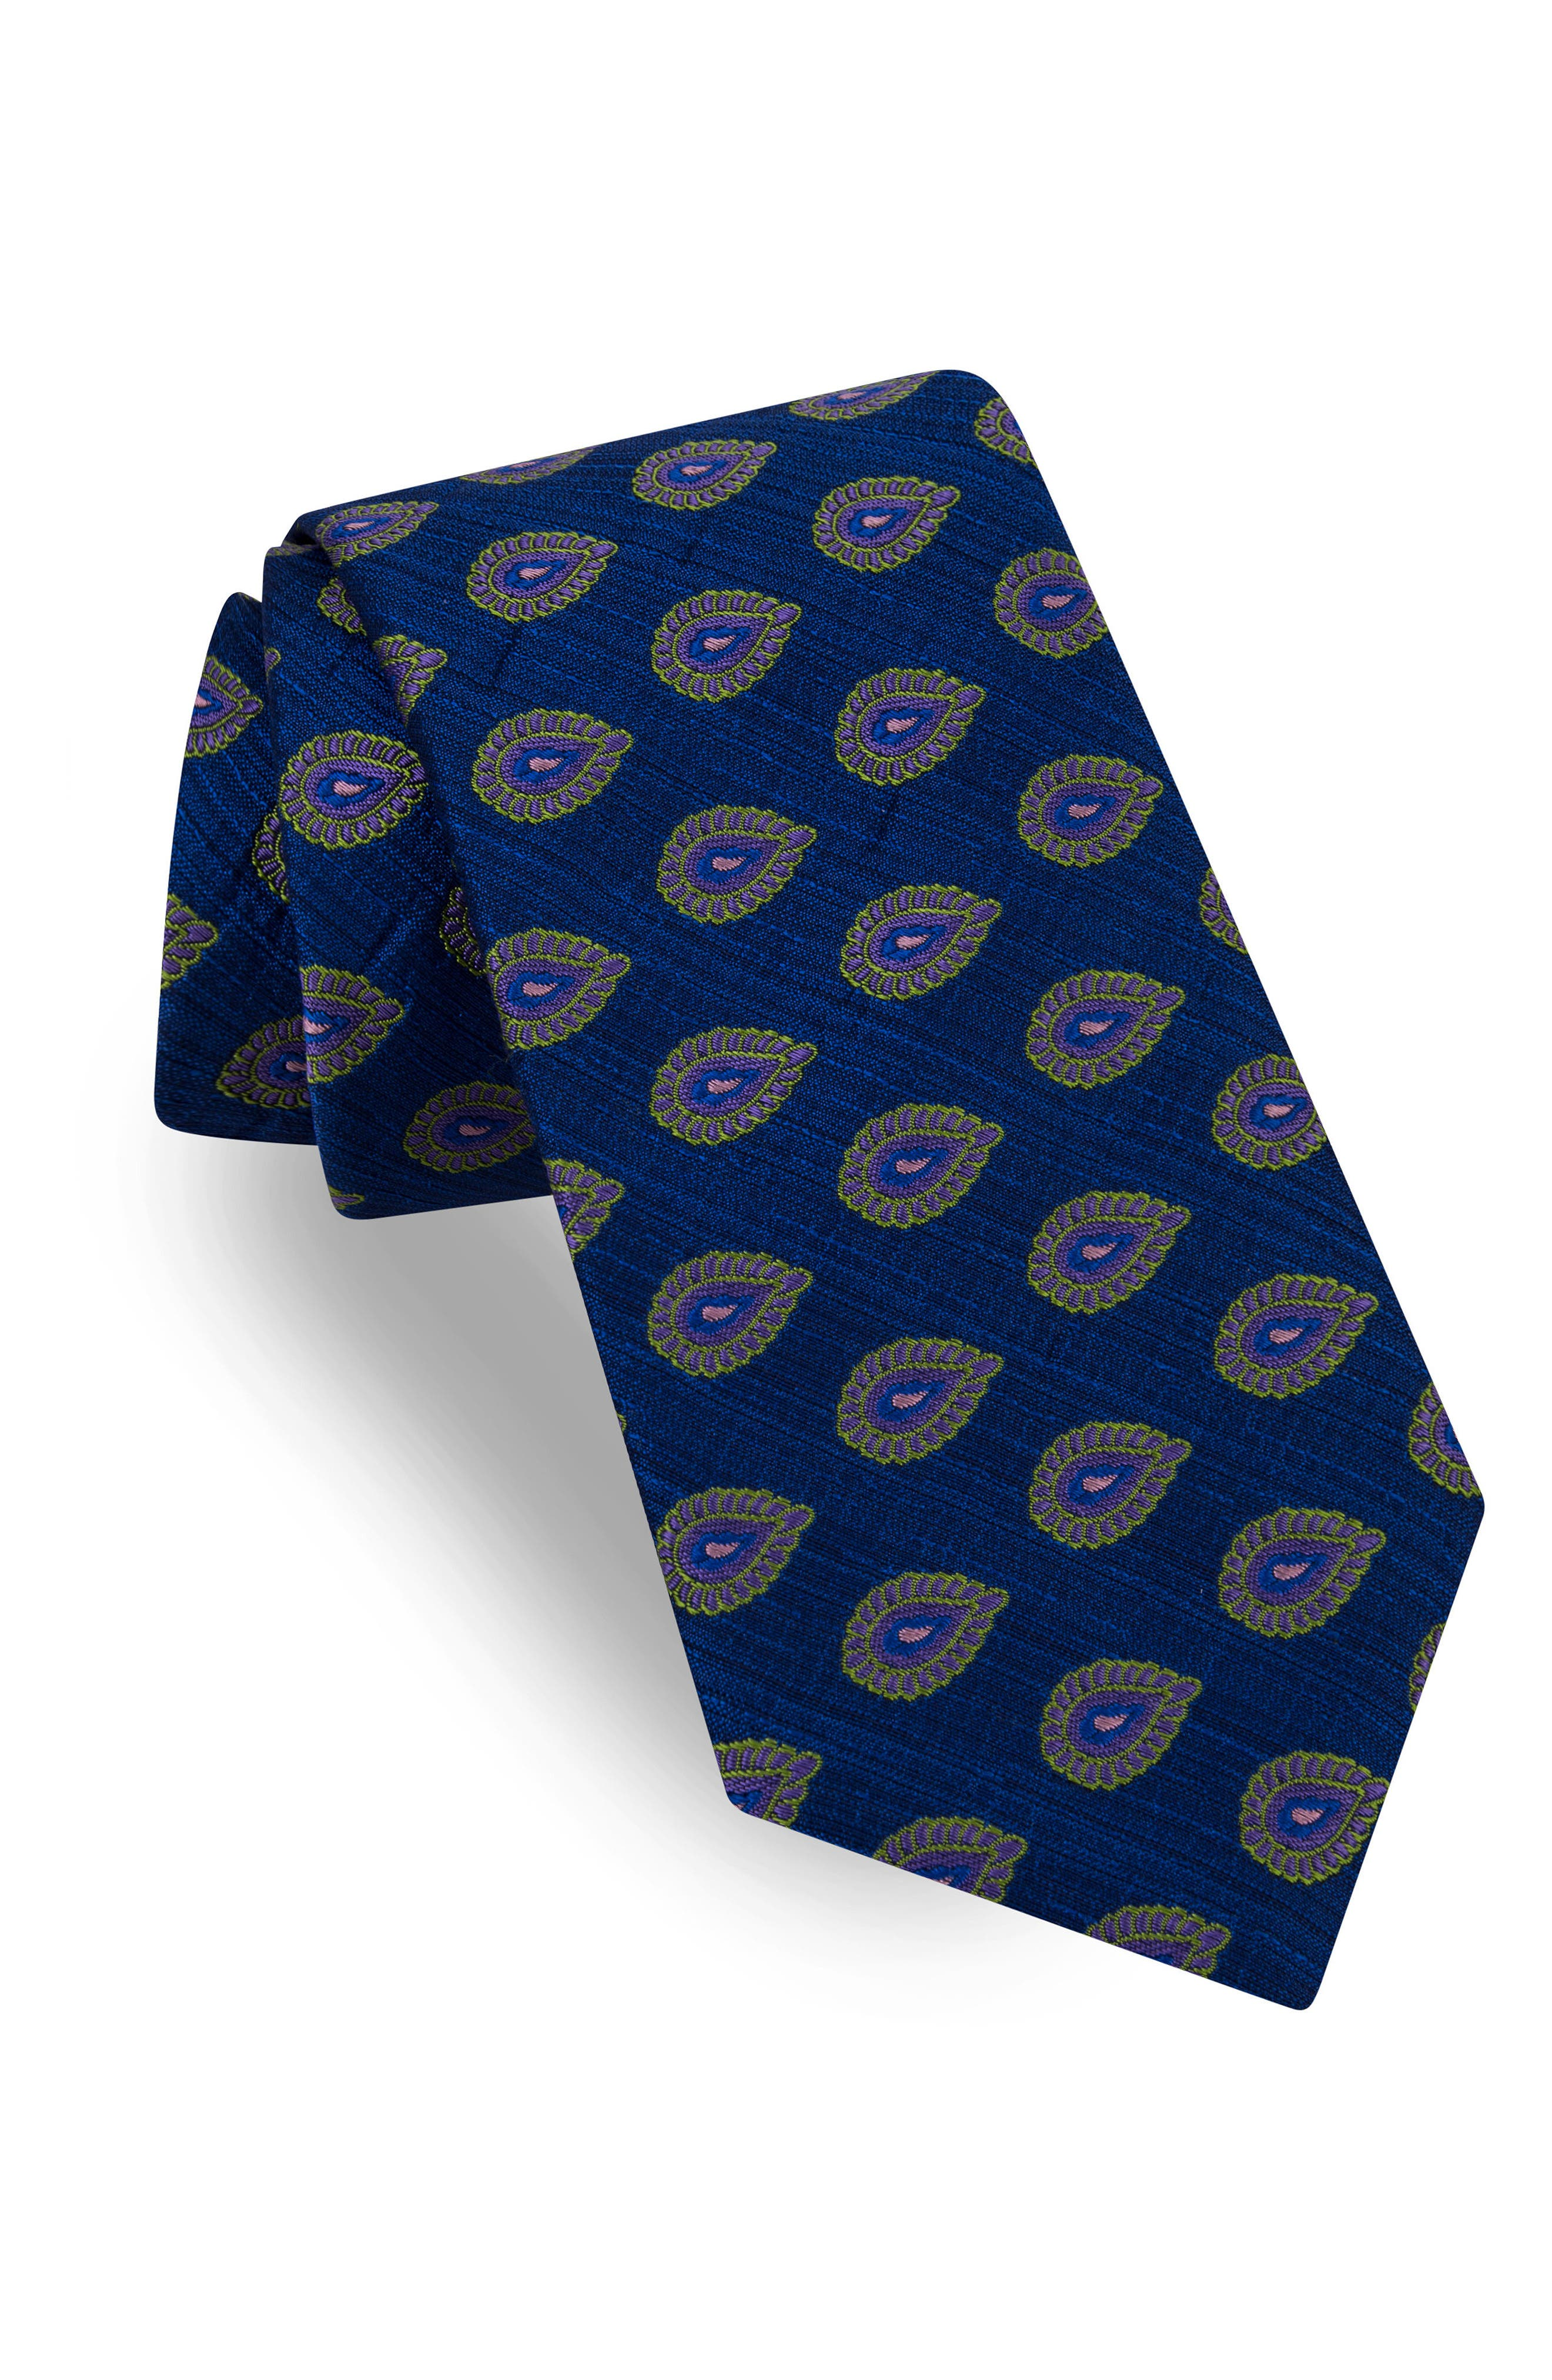 Superb Paisley Silk Tie,                         Main,                         color, 411